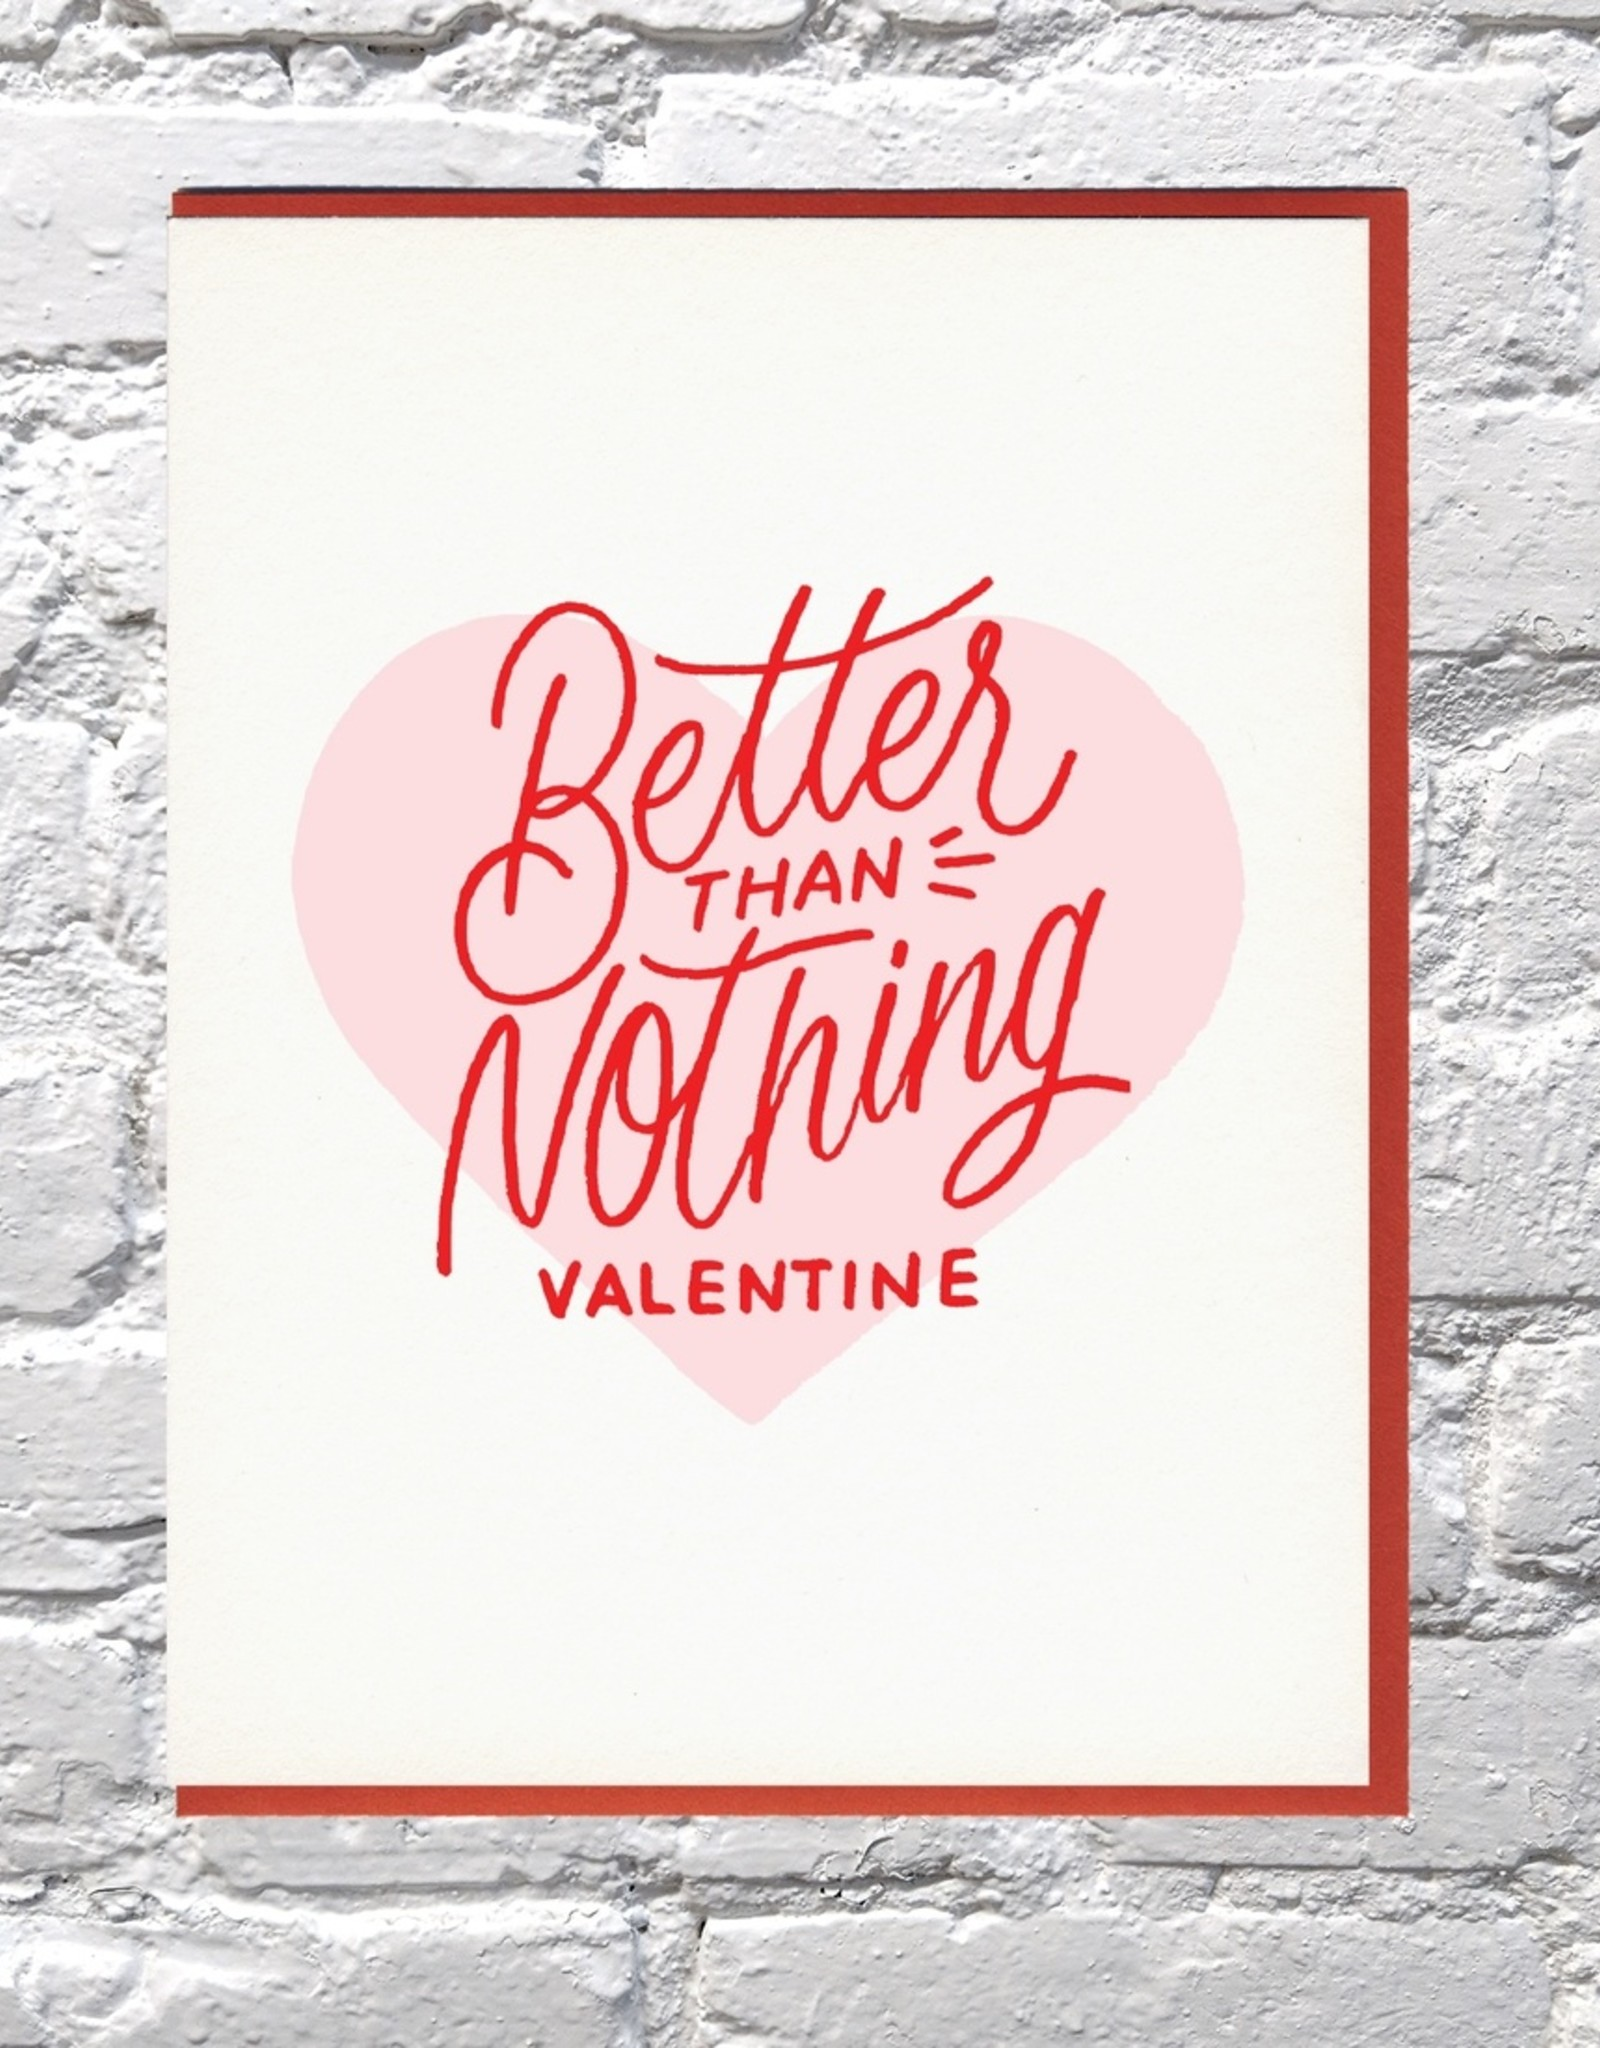 Card - Love: Better than nothing